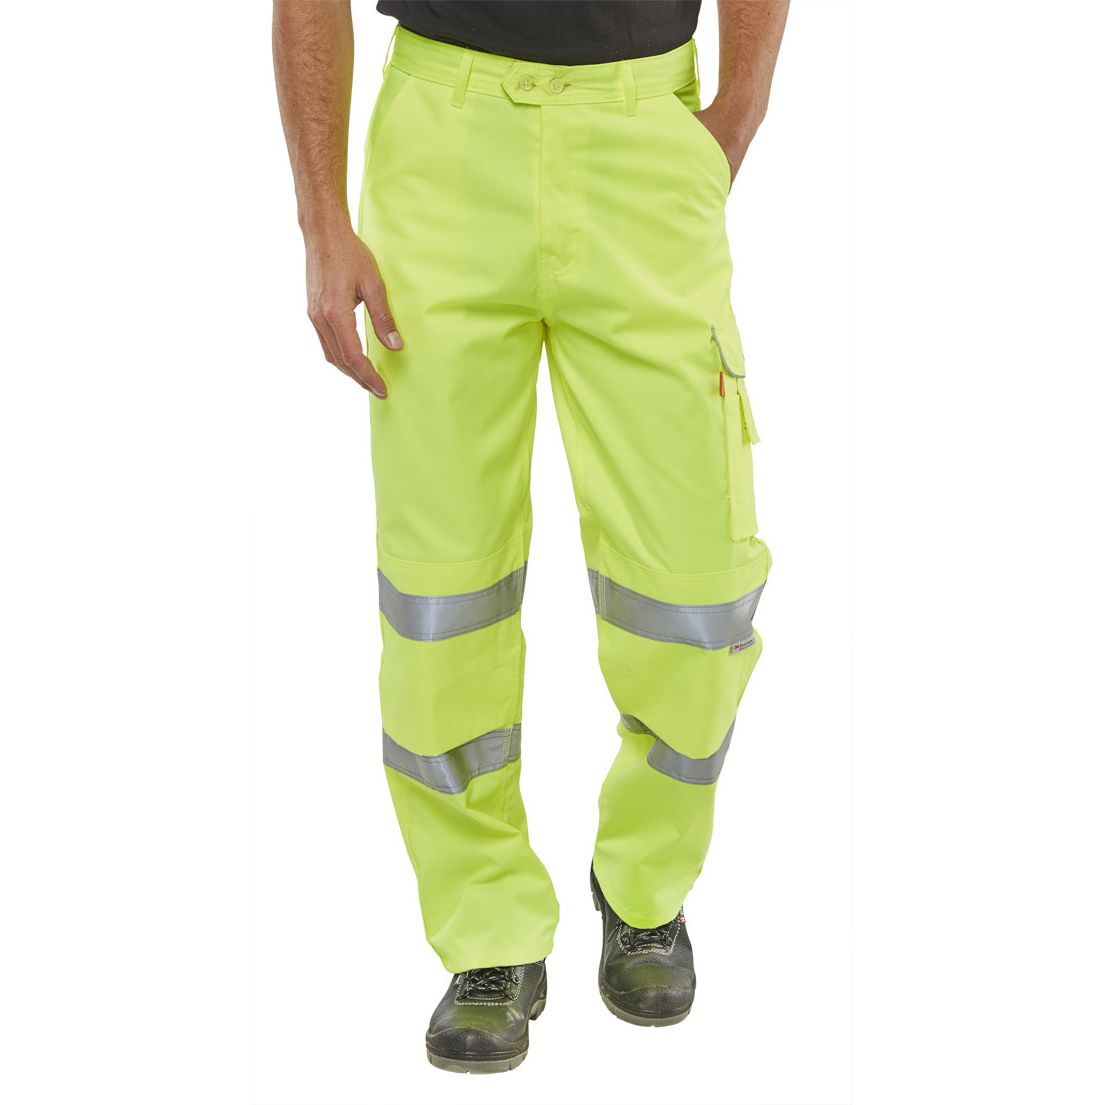 BSeen Trousers Polycotton Hi-Vis EN471 Saturn Yellow 28 Ref PCTENSY28 *Up to 3 Day Leadtime*